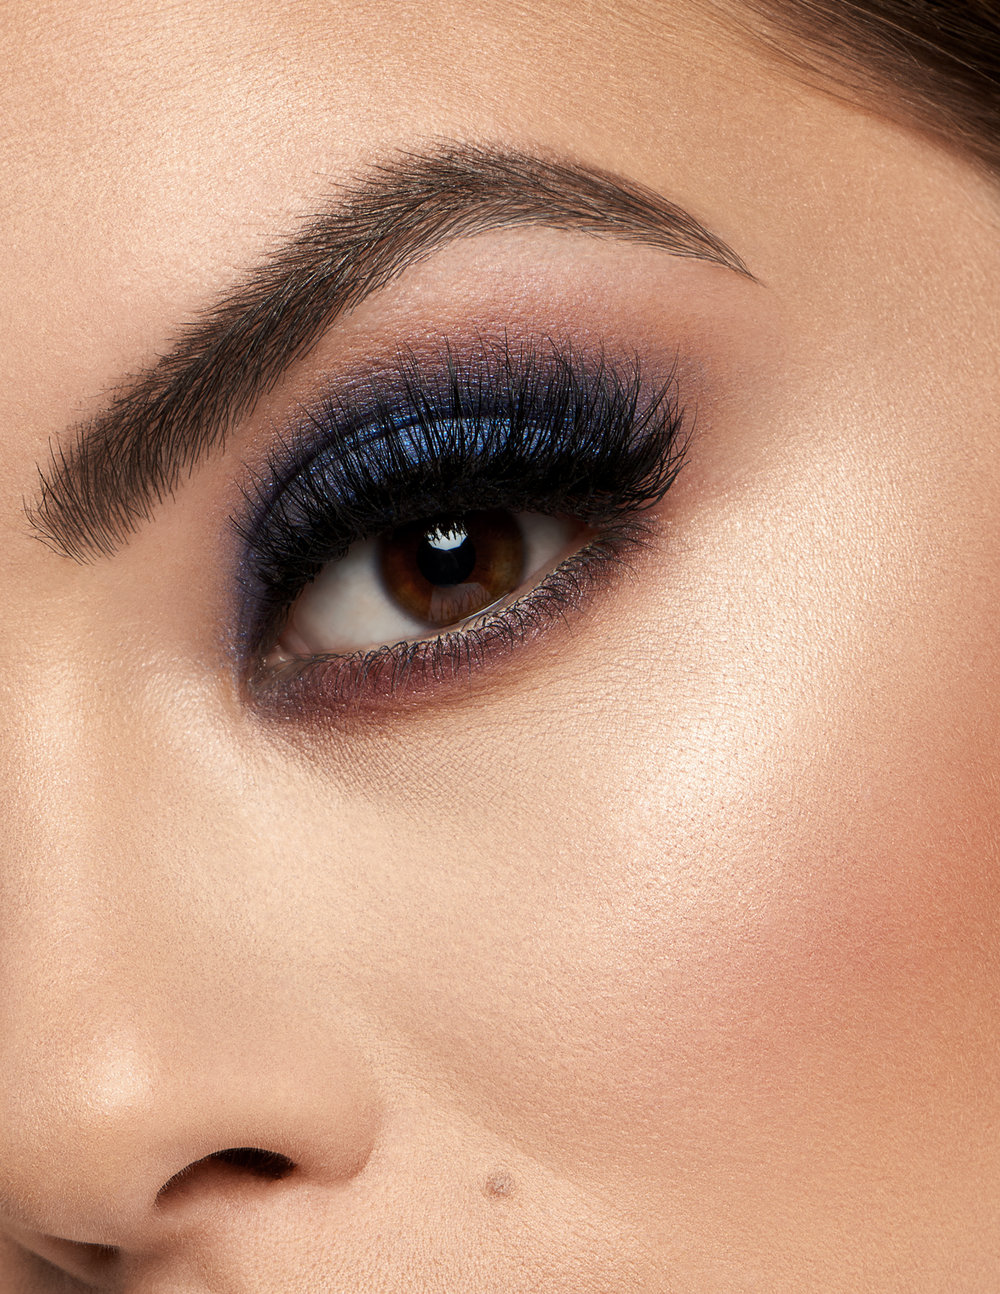 COVERGIRL_BLUEEYESHADOW_LOOK1_197_retouched_lowres.jpg